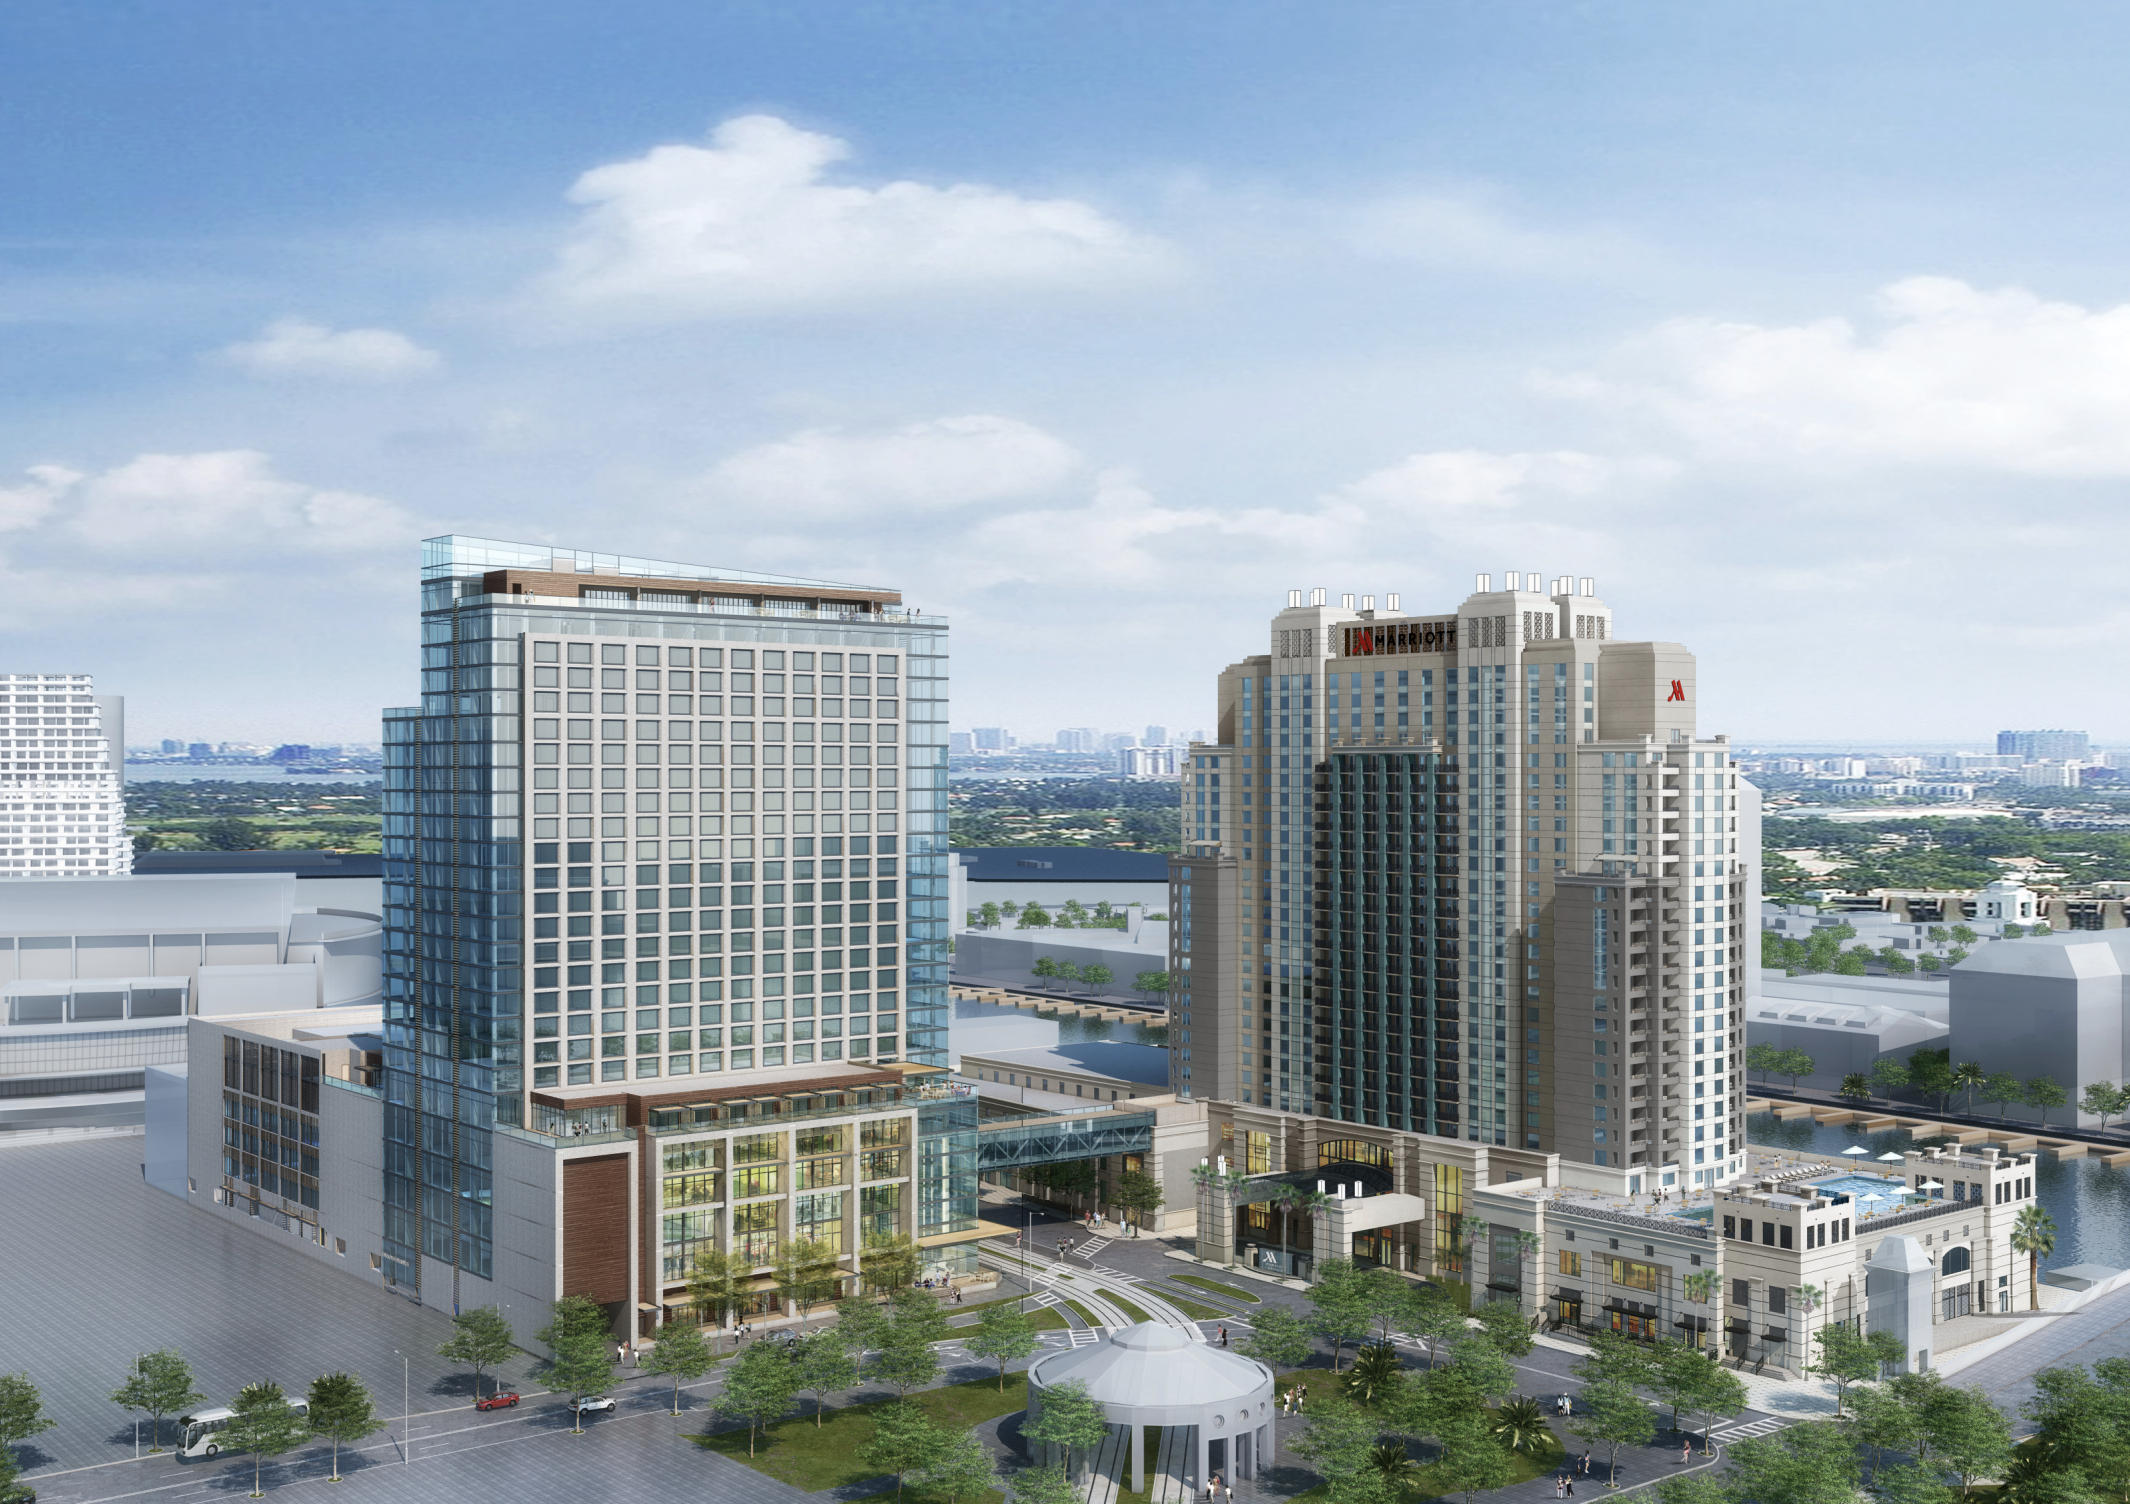 JW Marriot Tampa & Tampa Marriot Waterside. Courtesy of Strategic Property Partners.